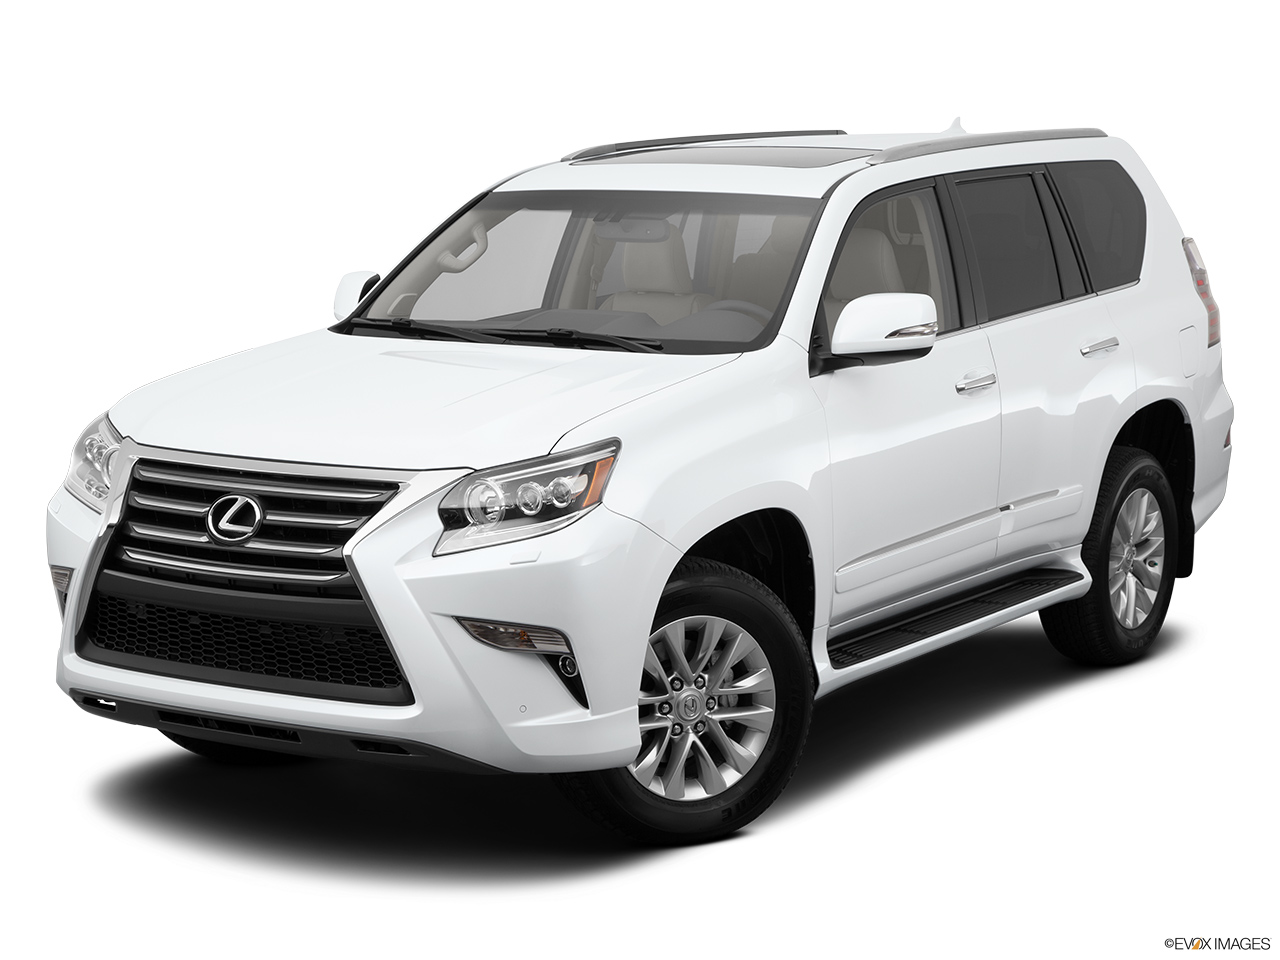 2014 lexus gx 460 4wd. Black Bedroom Furniture Sets. Home Design Ideas